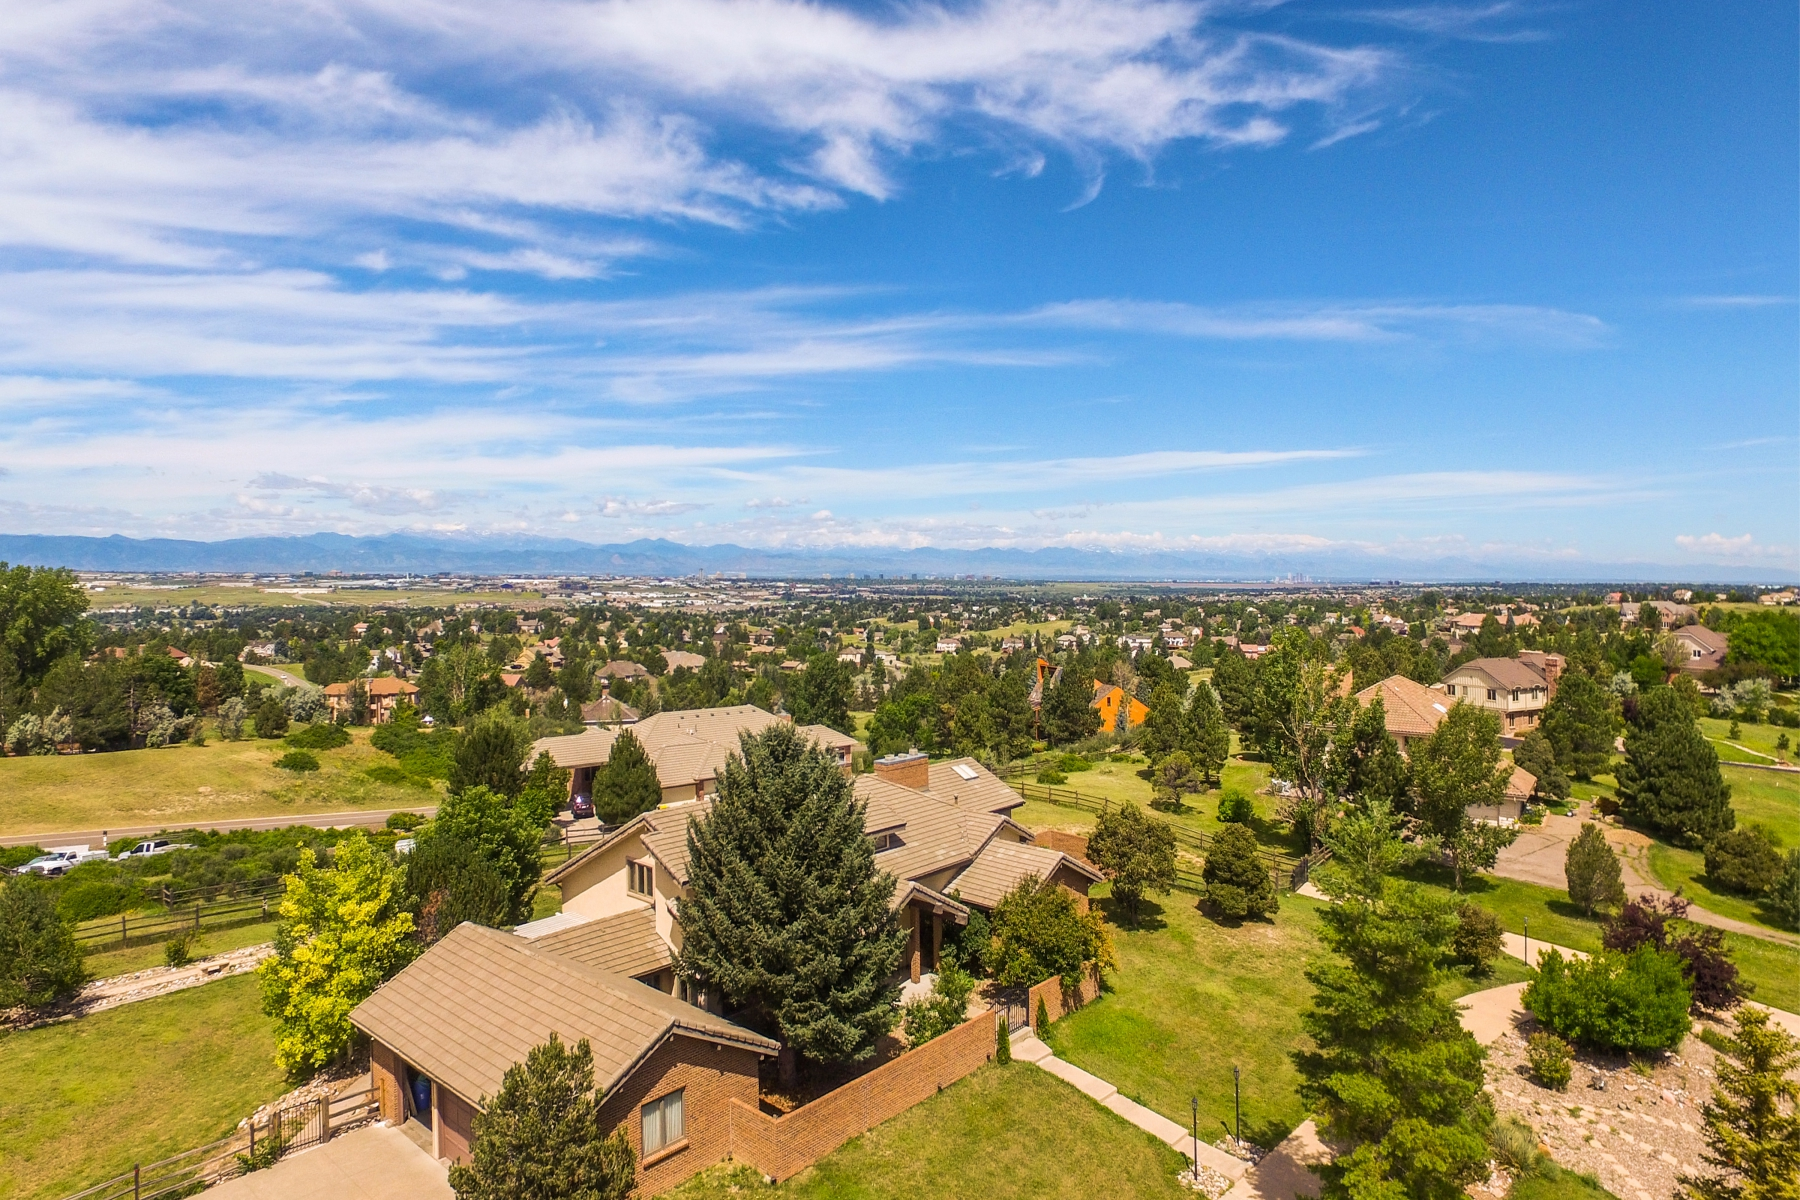 Single Family Home for Sale at Centennial Home 7695 South Flanders Street Centennial, Colorado 80016 United States